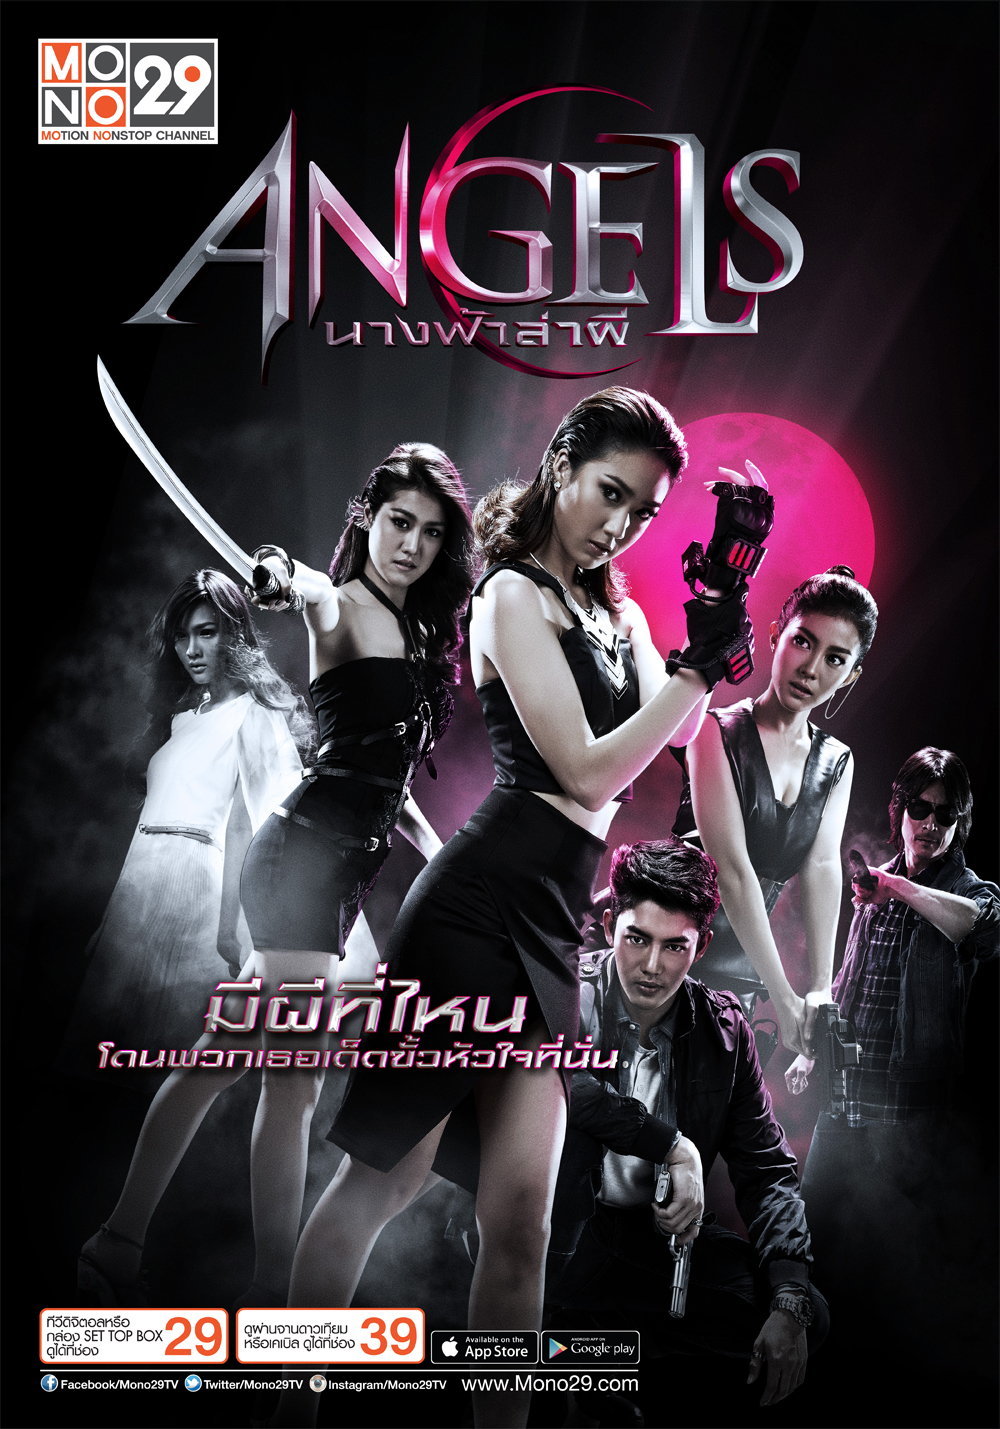 Angels นางฟ้าล่าผี (Angels Ghost Hunters TV Series)